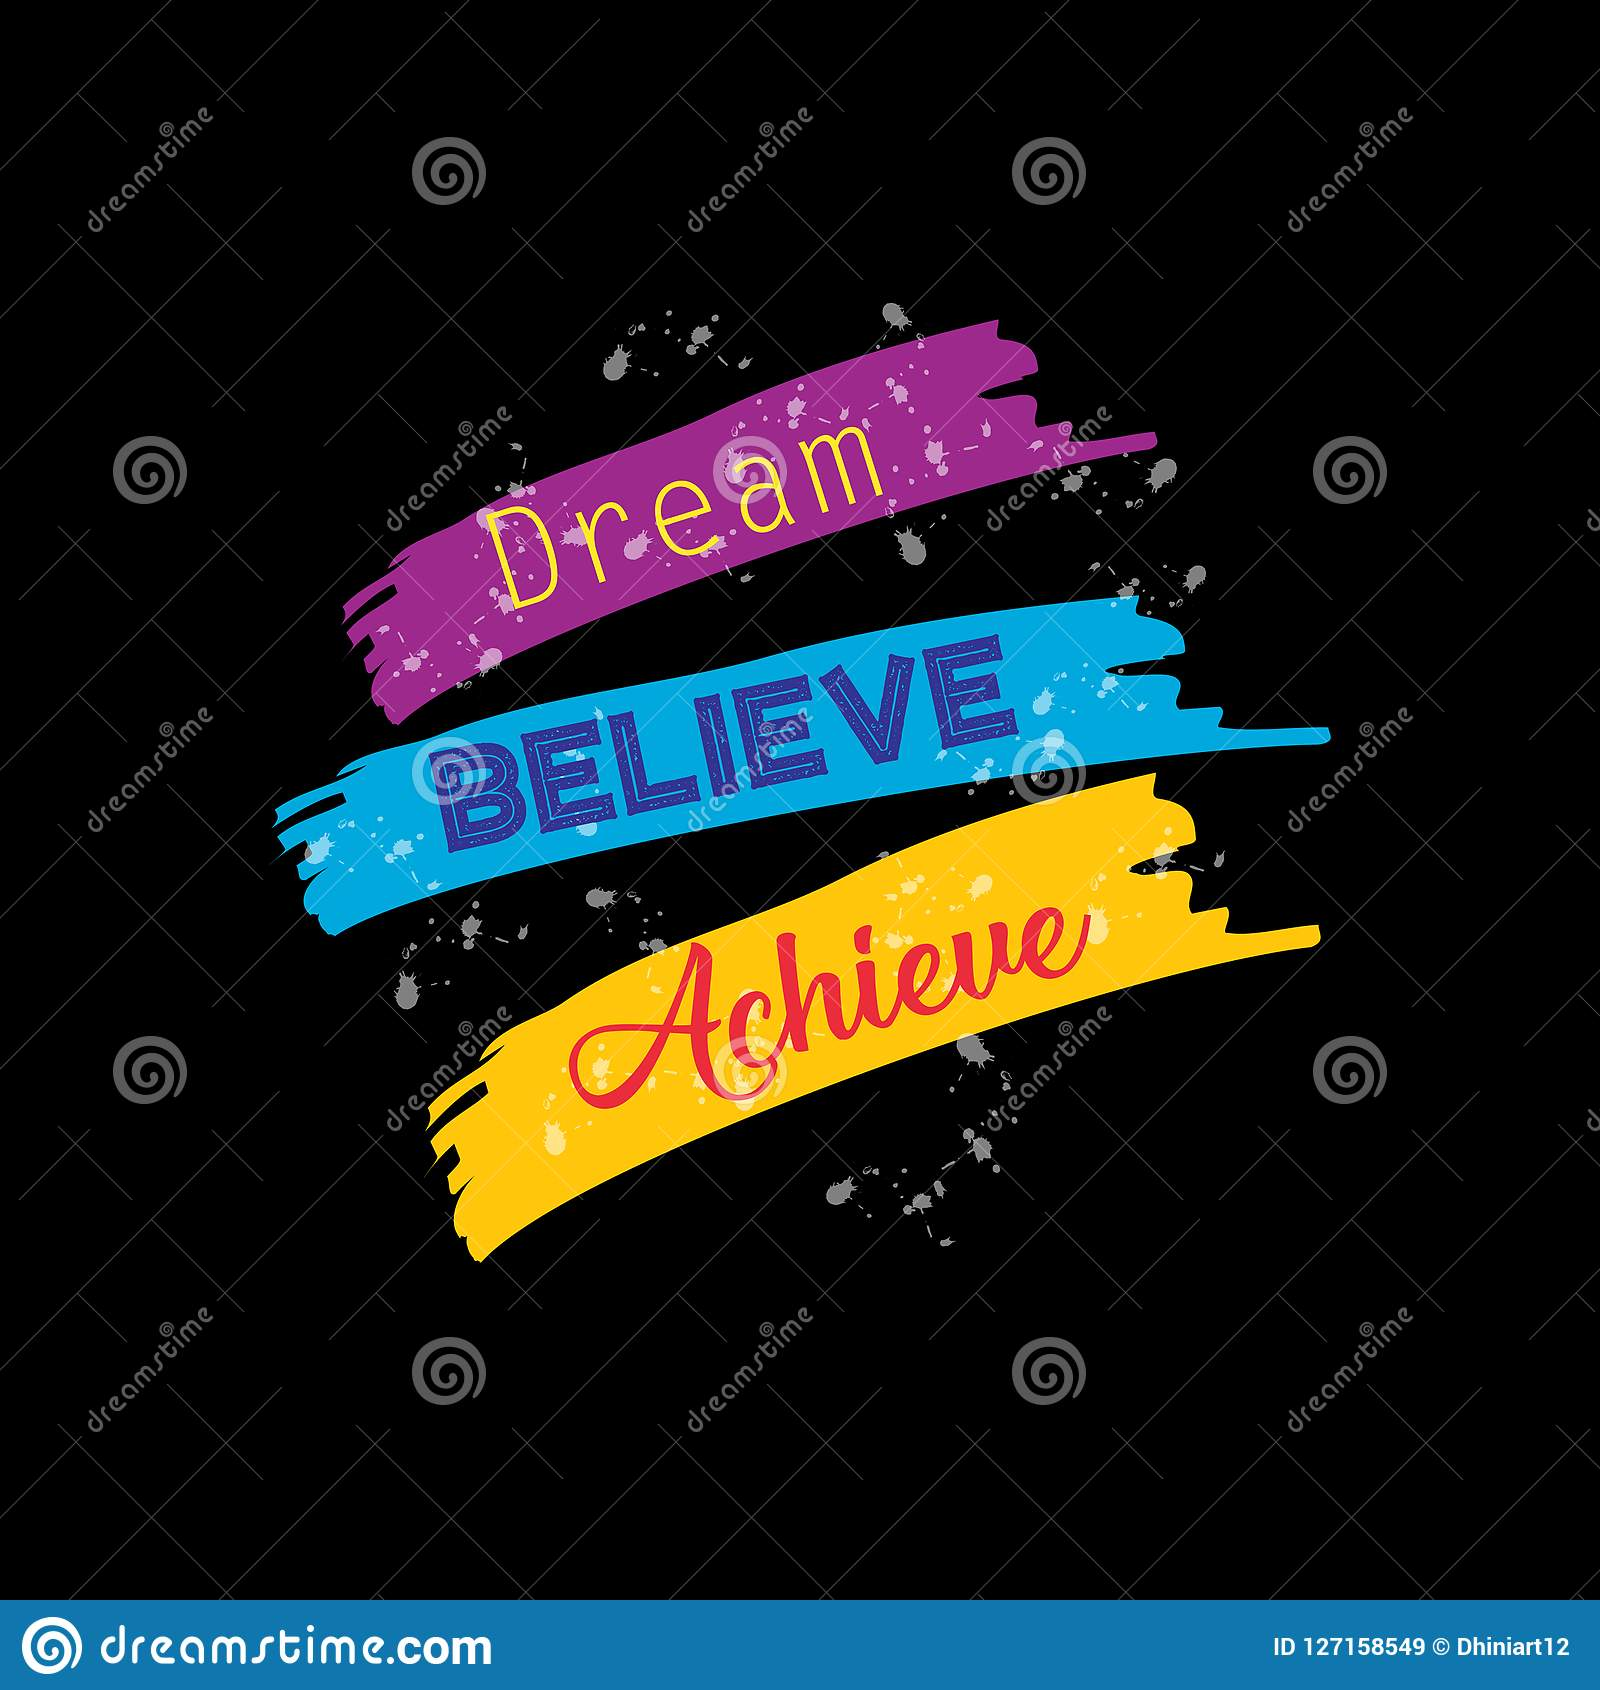 Dream believe achieve.